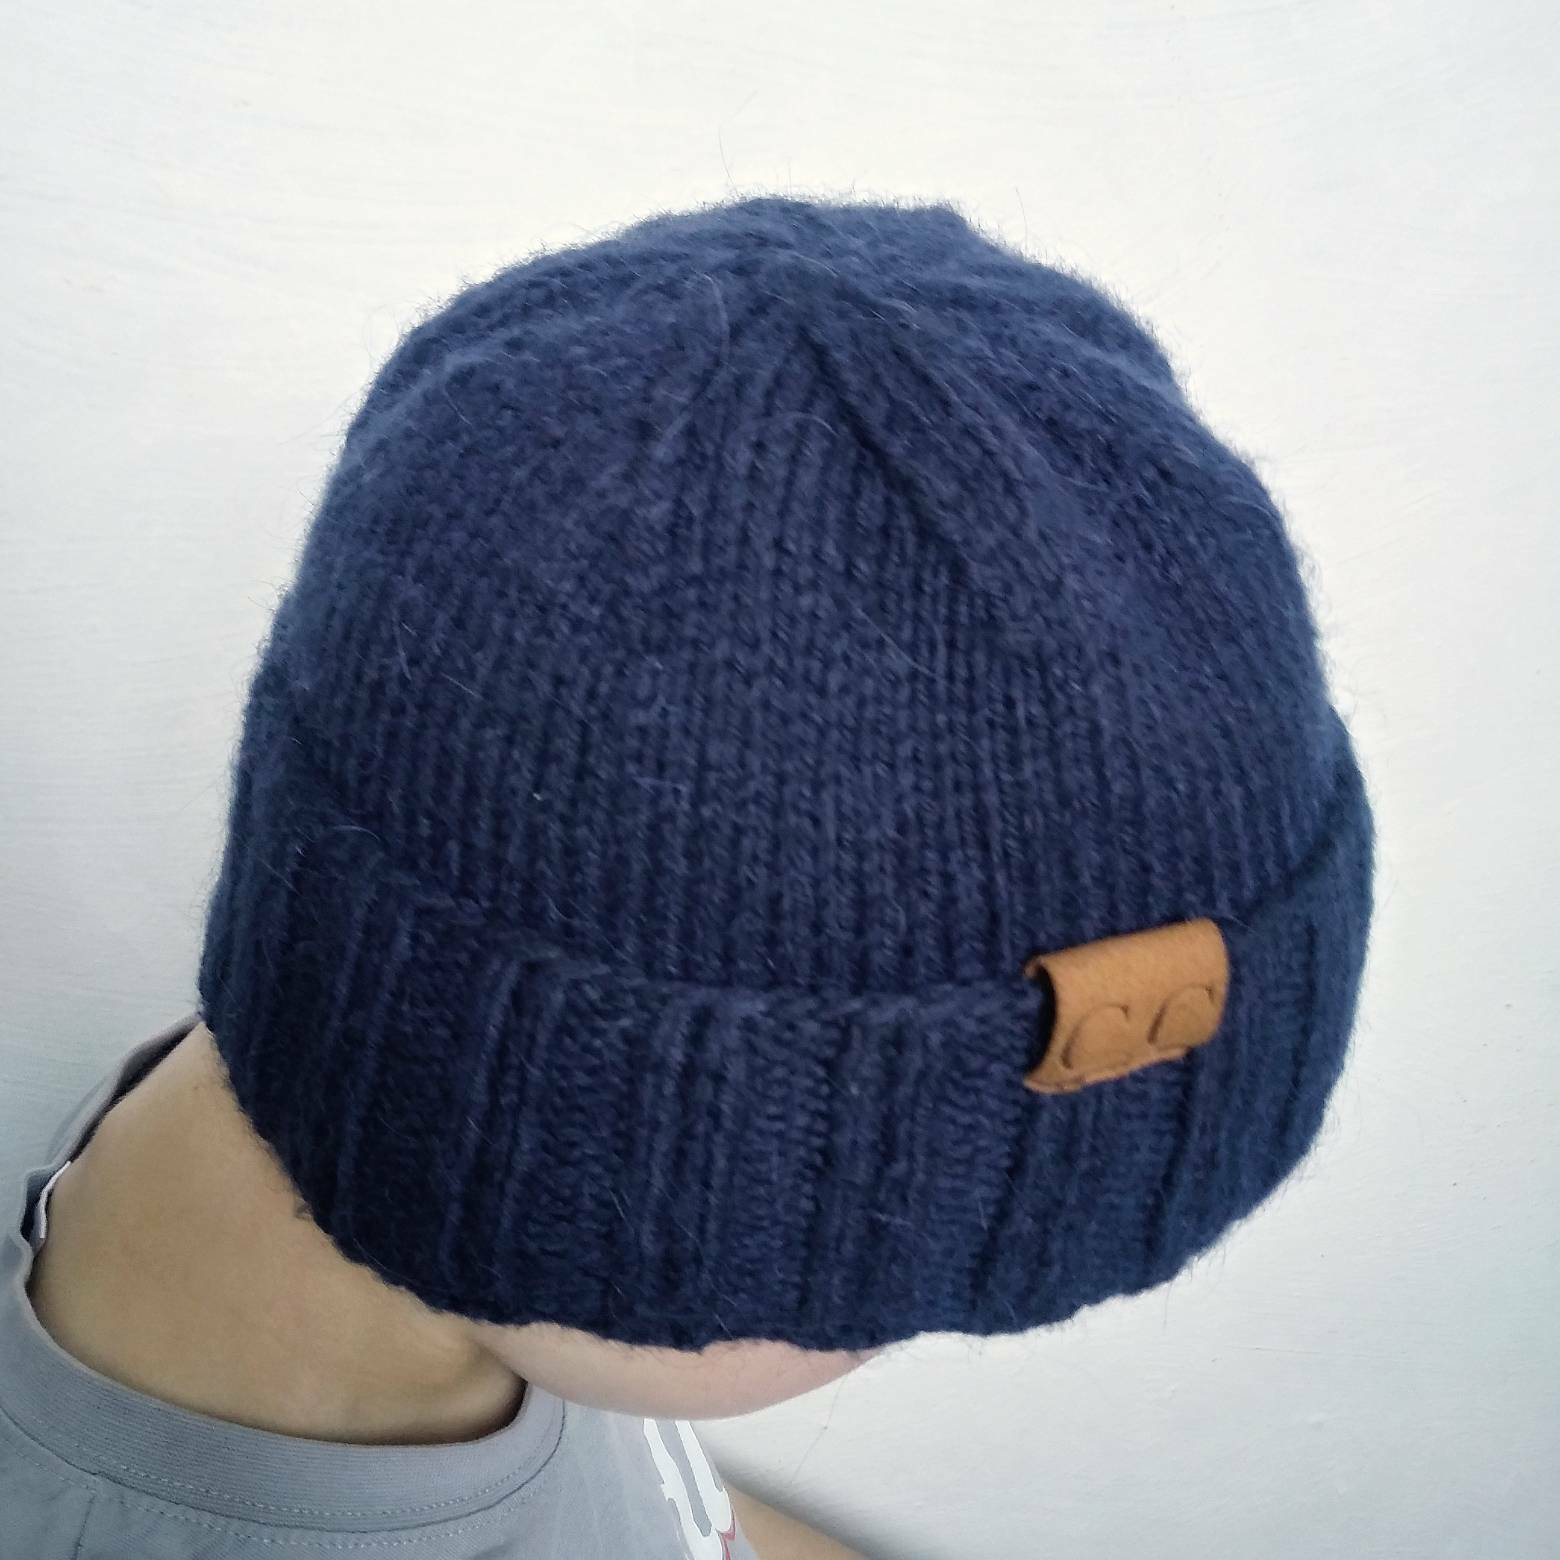 Knitted Mens Hat Patterns Pattern Knit Beanie Mens Knit Hats Patterns Knit Mens Beanies Patterns Pdf Pattern Mens Hat Knit Cap Boy Hat For Him